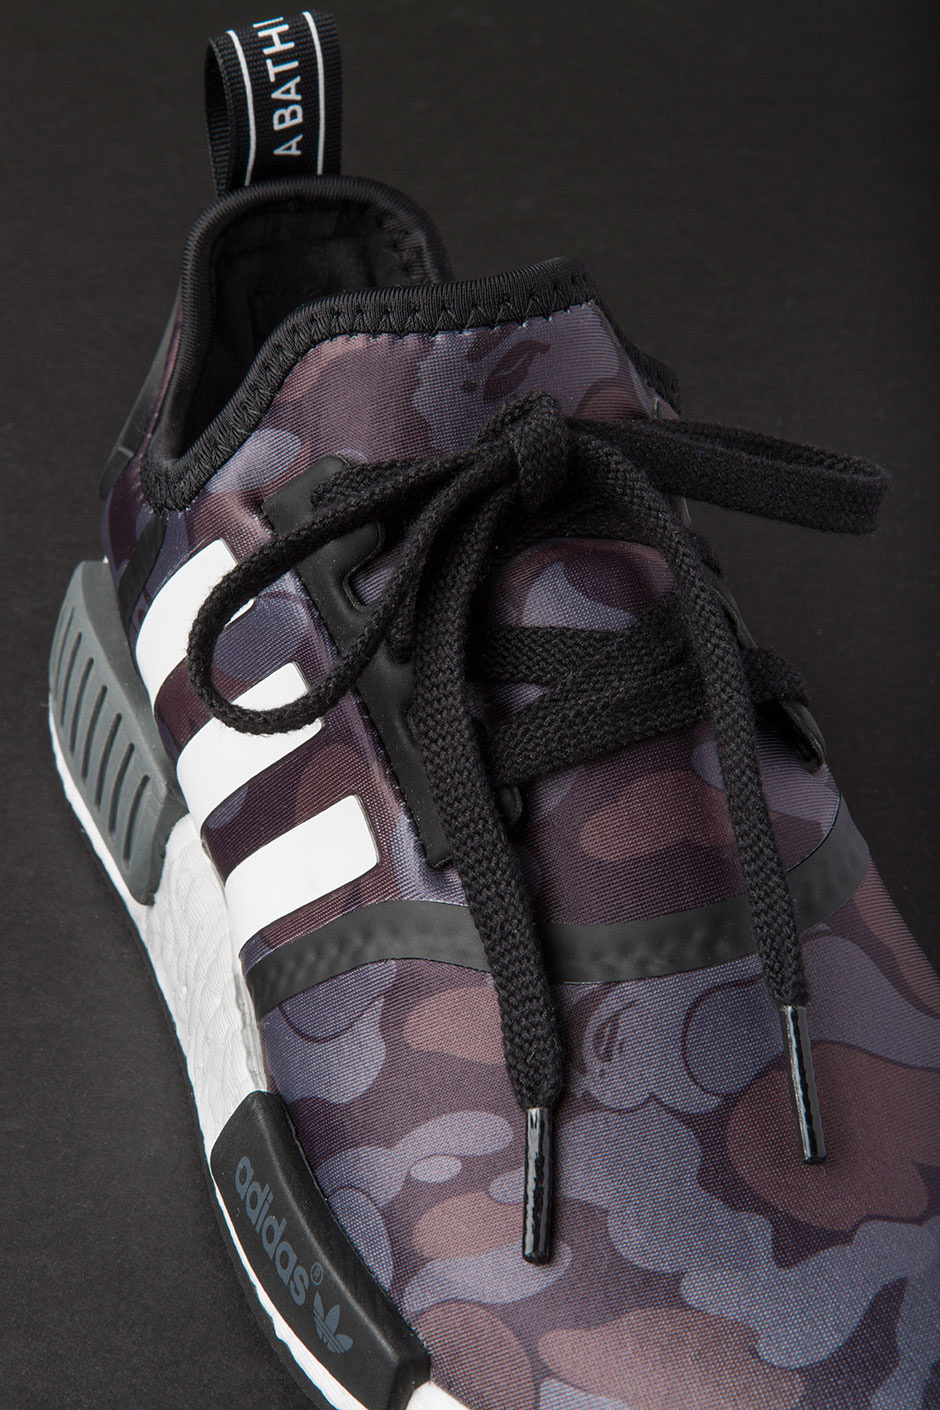 A Closer Look: The adidas NMD